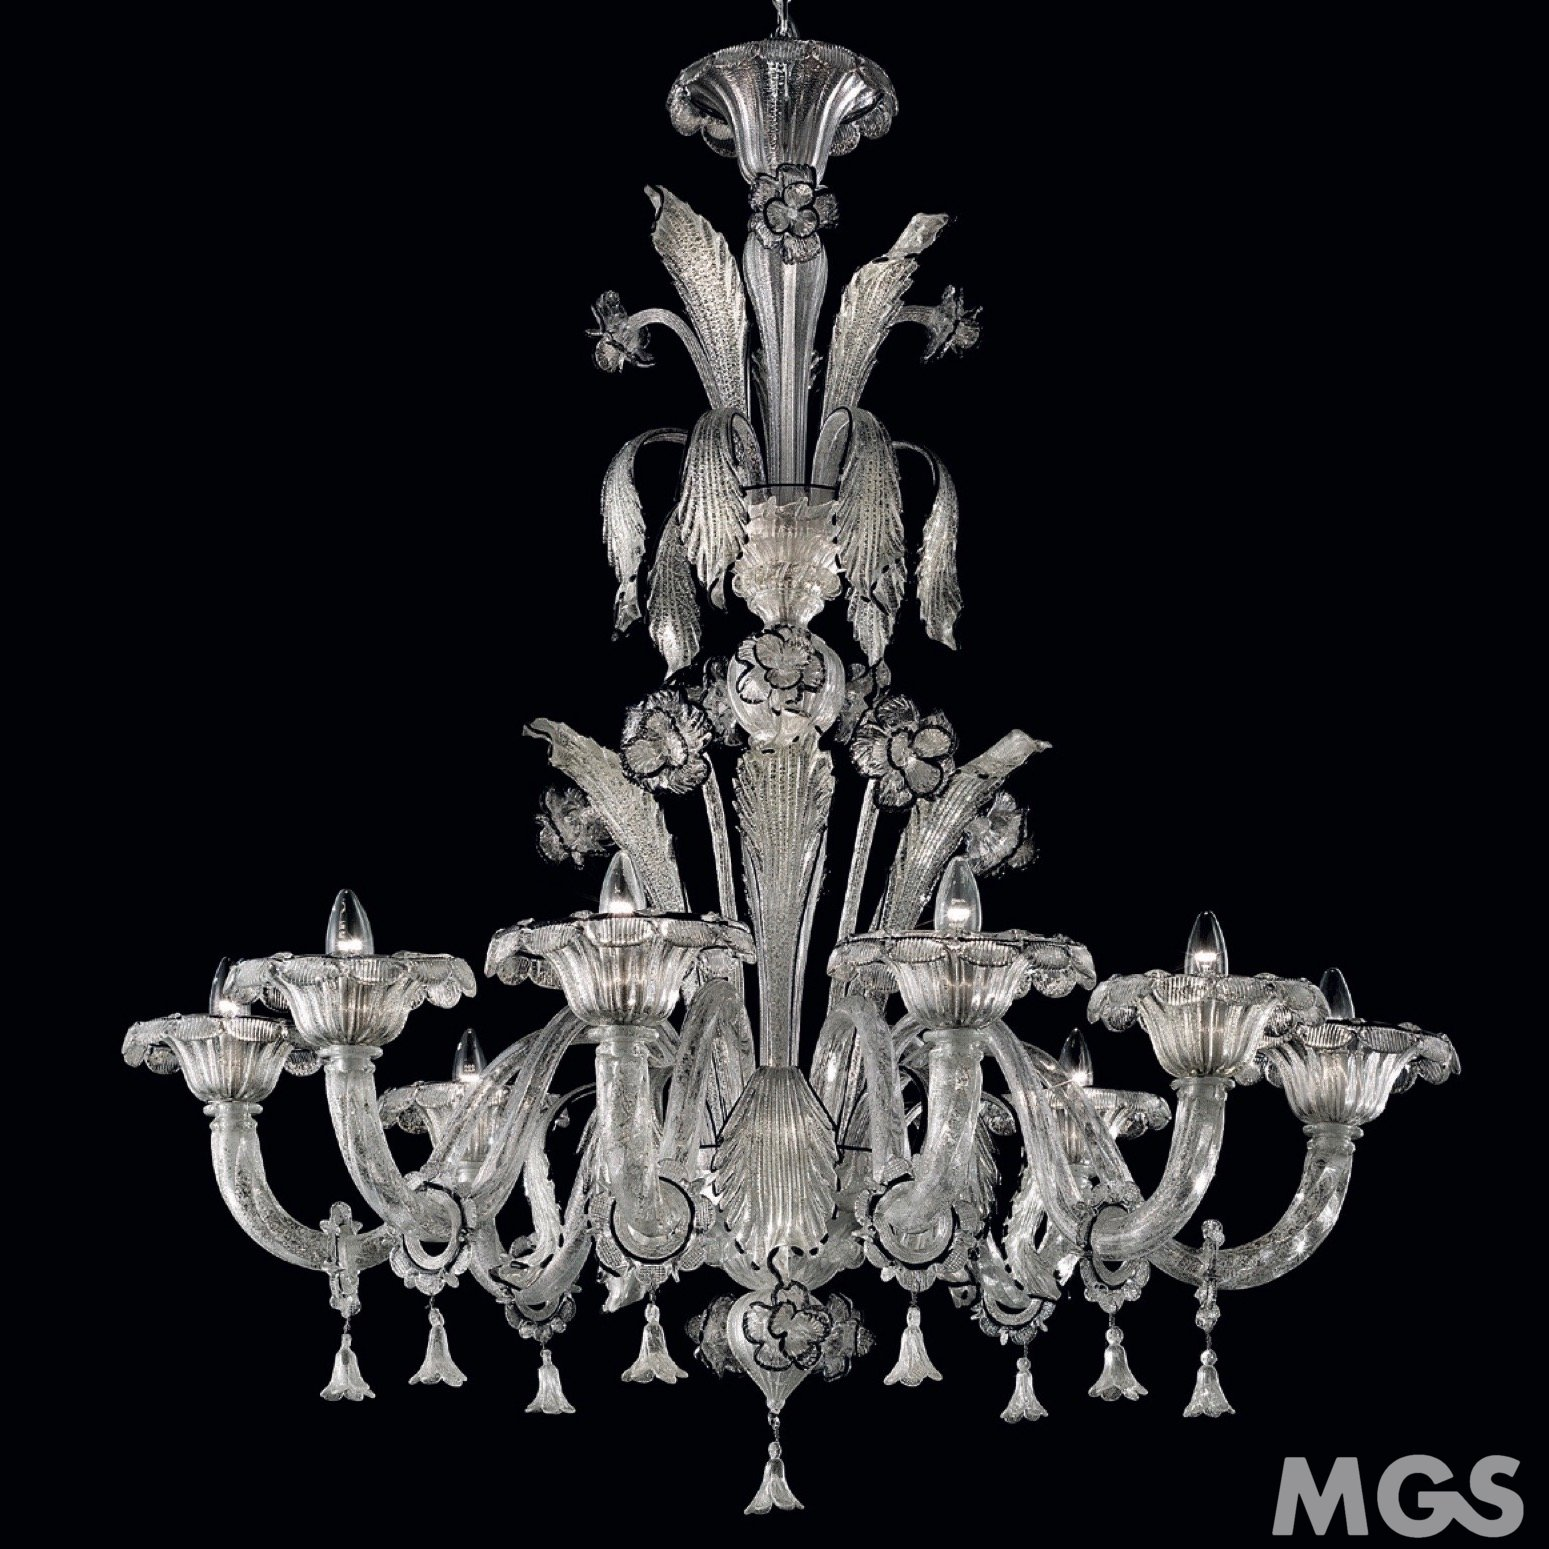 Lampadario Cristallo Argento | Murano Glass Shop